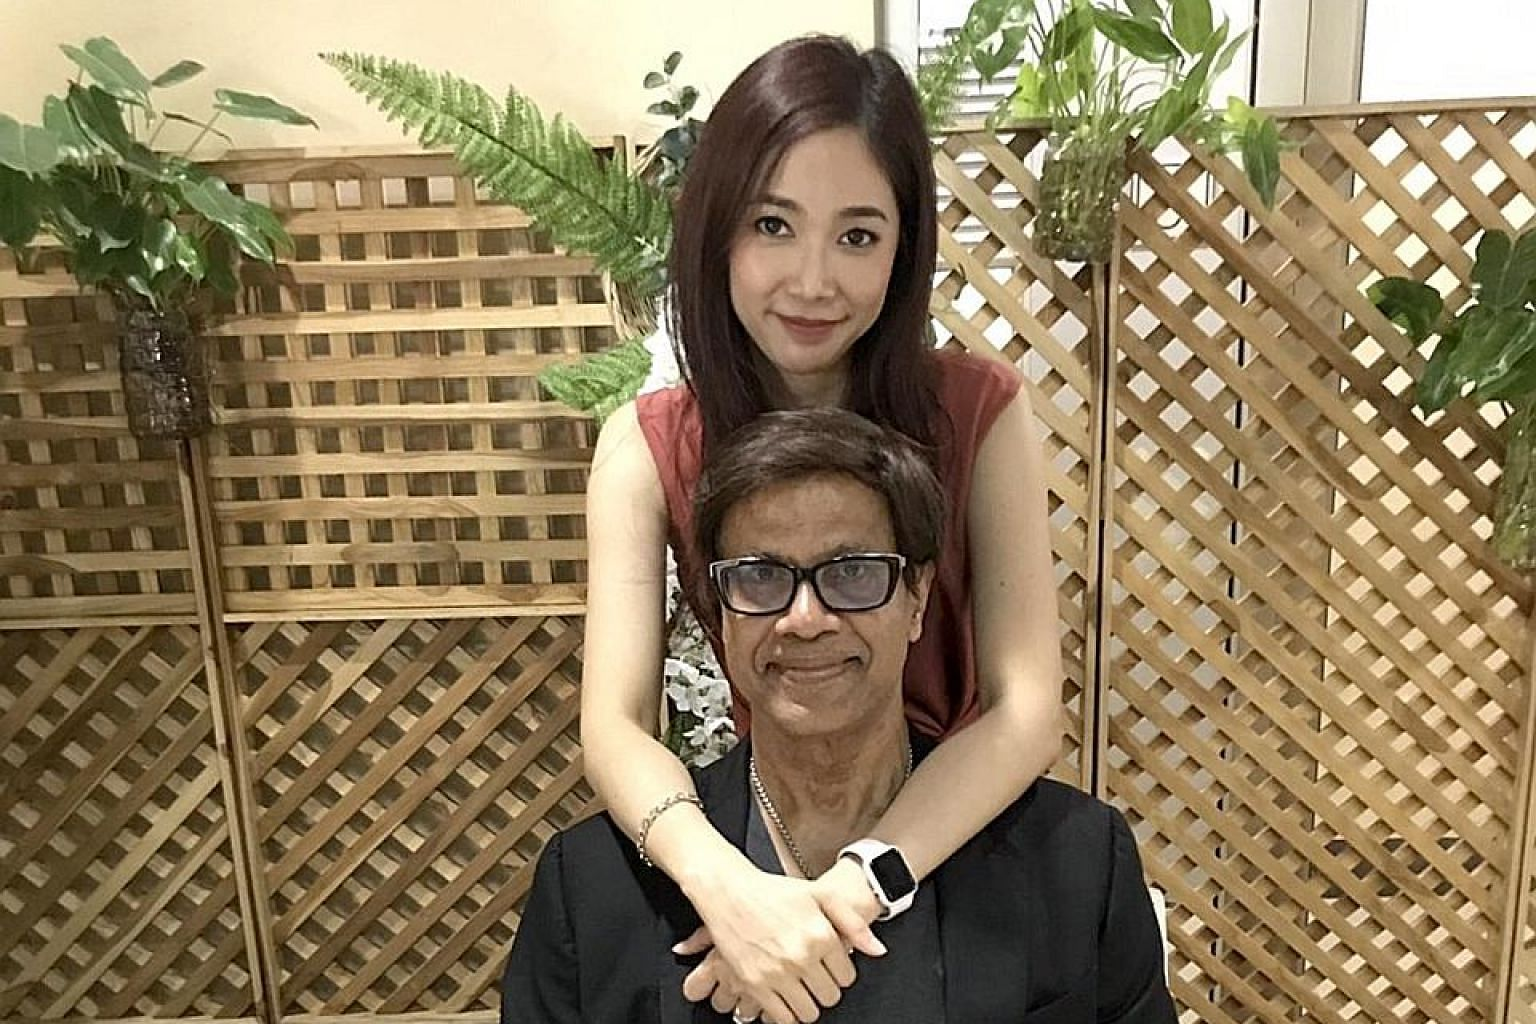 Dr Gobinathan Devathasan, 70, with his new wife, 33-year-old Thai-born Leena Soalsung, whom he married last month. PHOTO: COURTESY OF GOBINATHAN DEVATHASAN